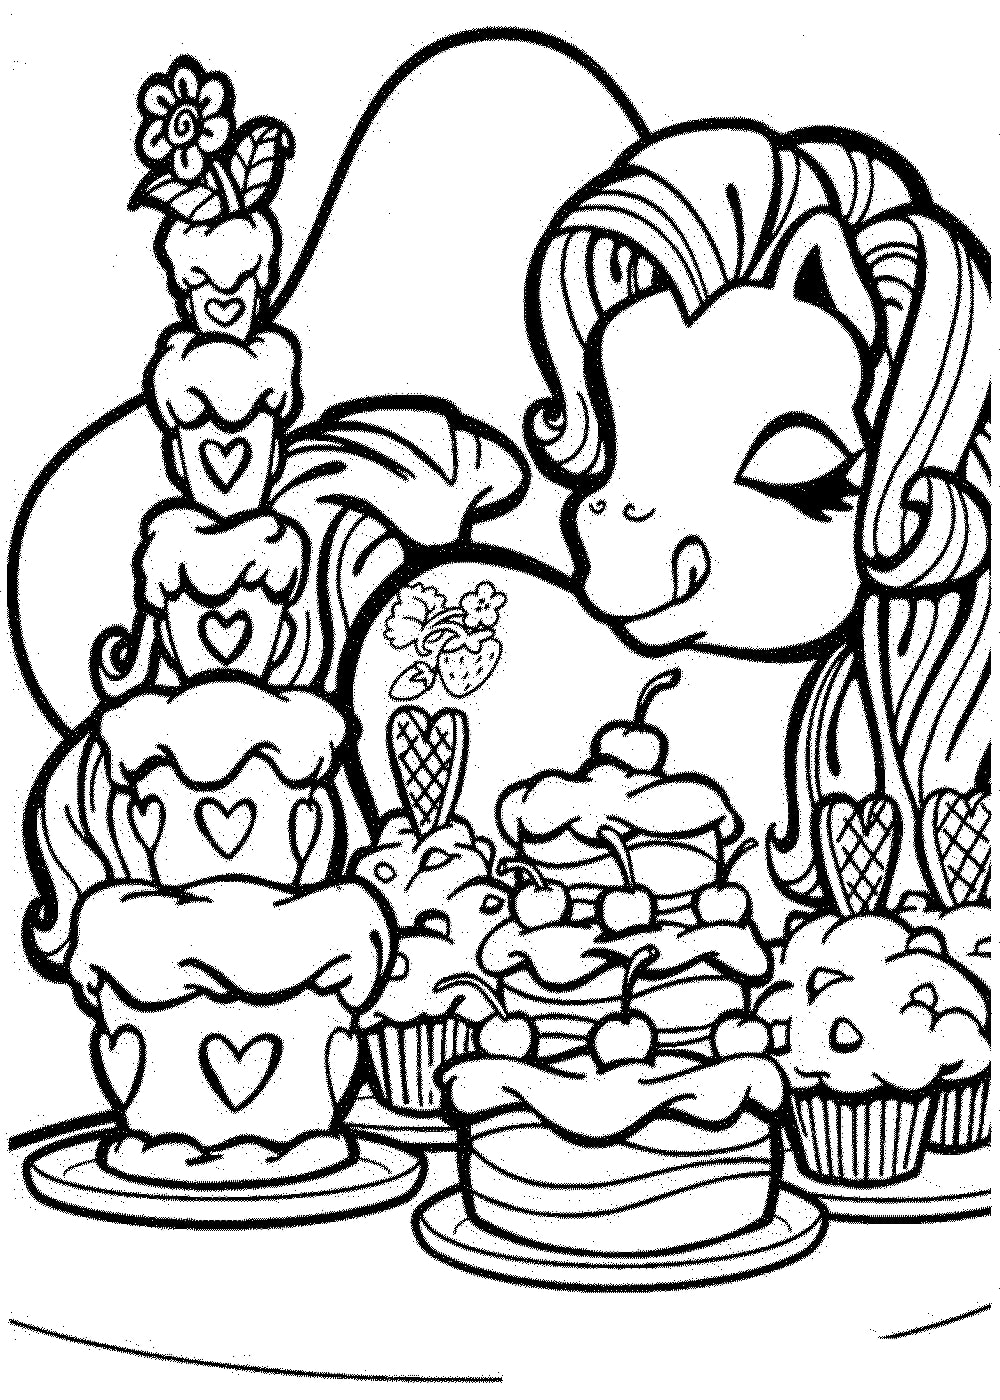 Rainbow Dash Cakes Coloring Page